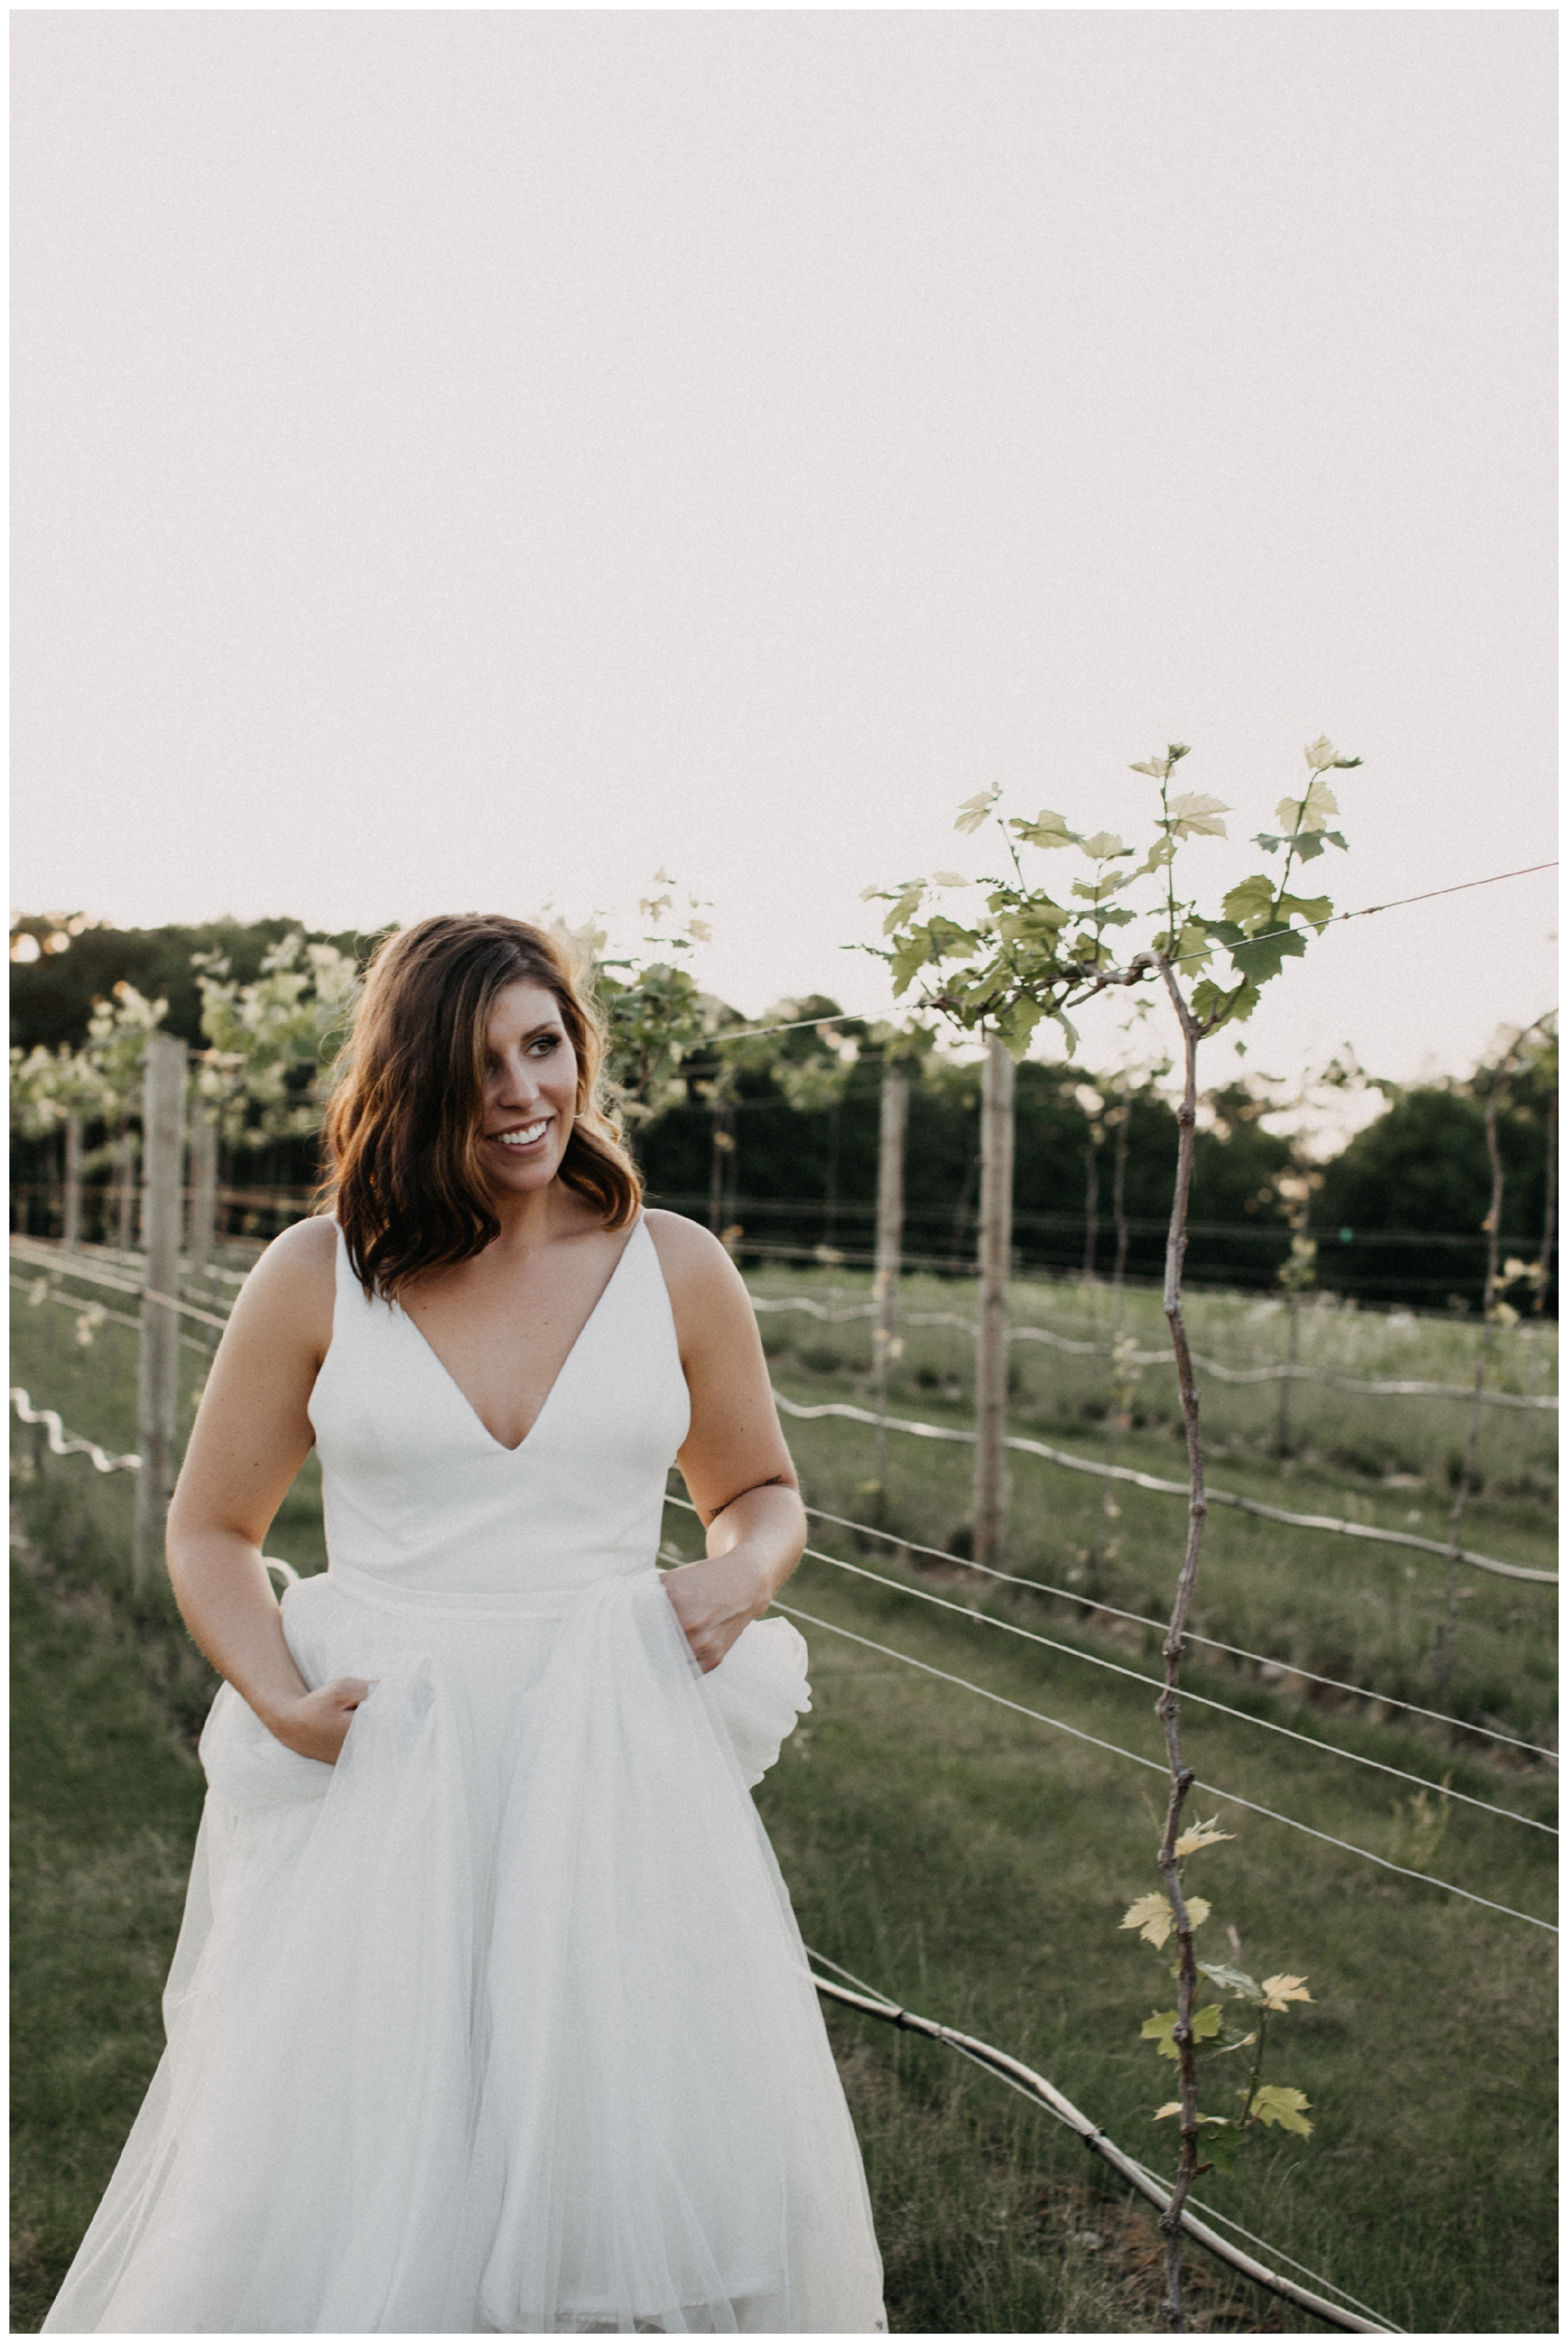 Romantic Minnesota summer wedding in vineyard